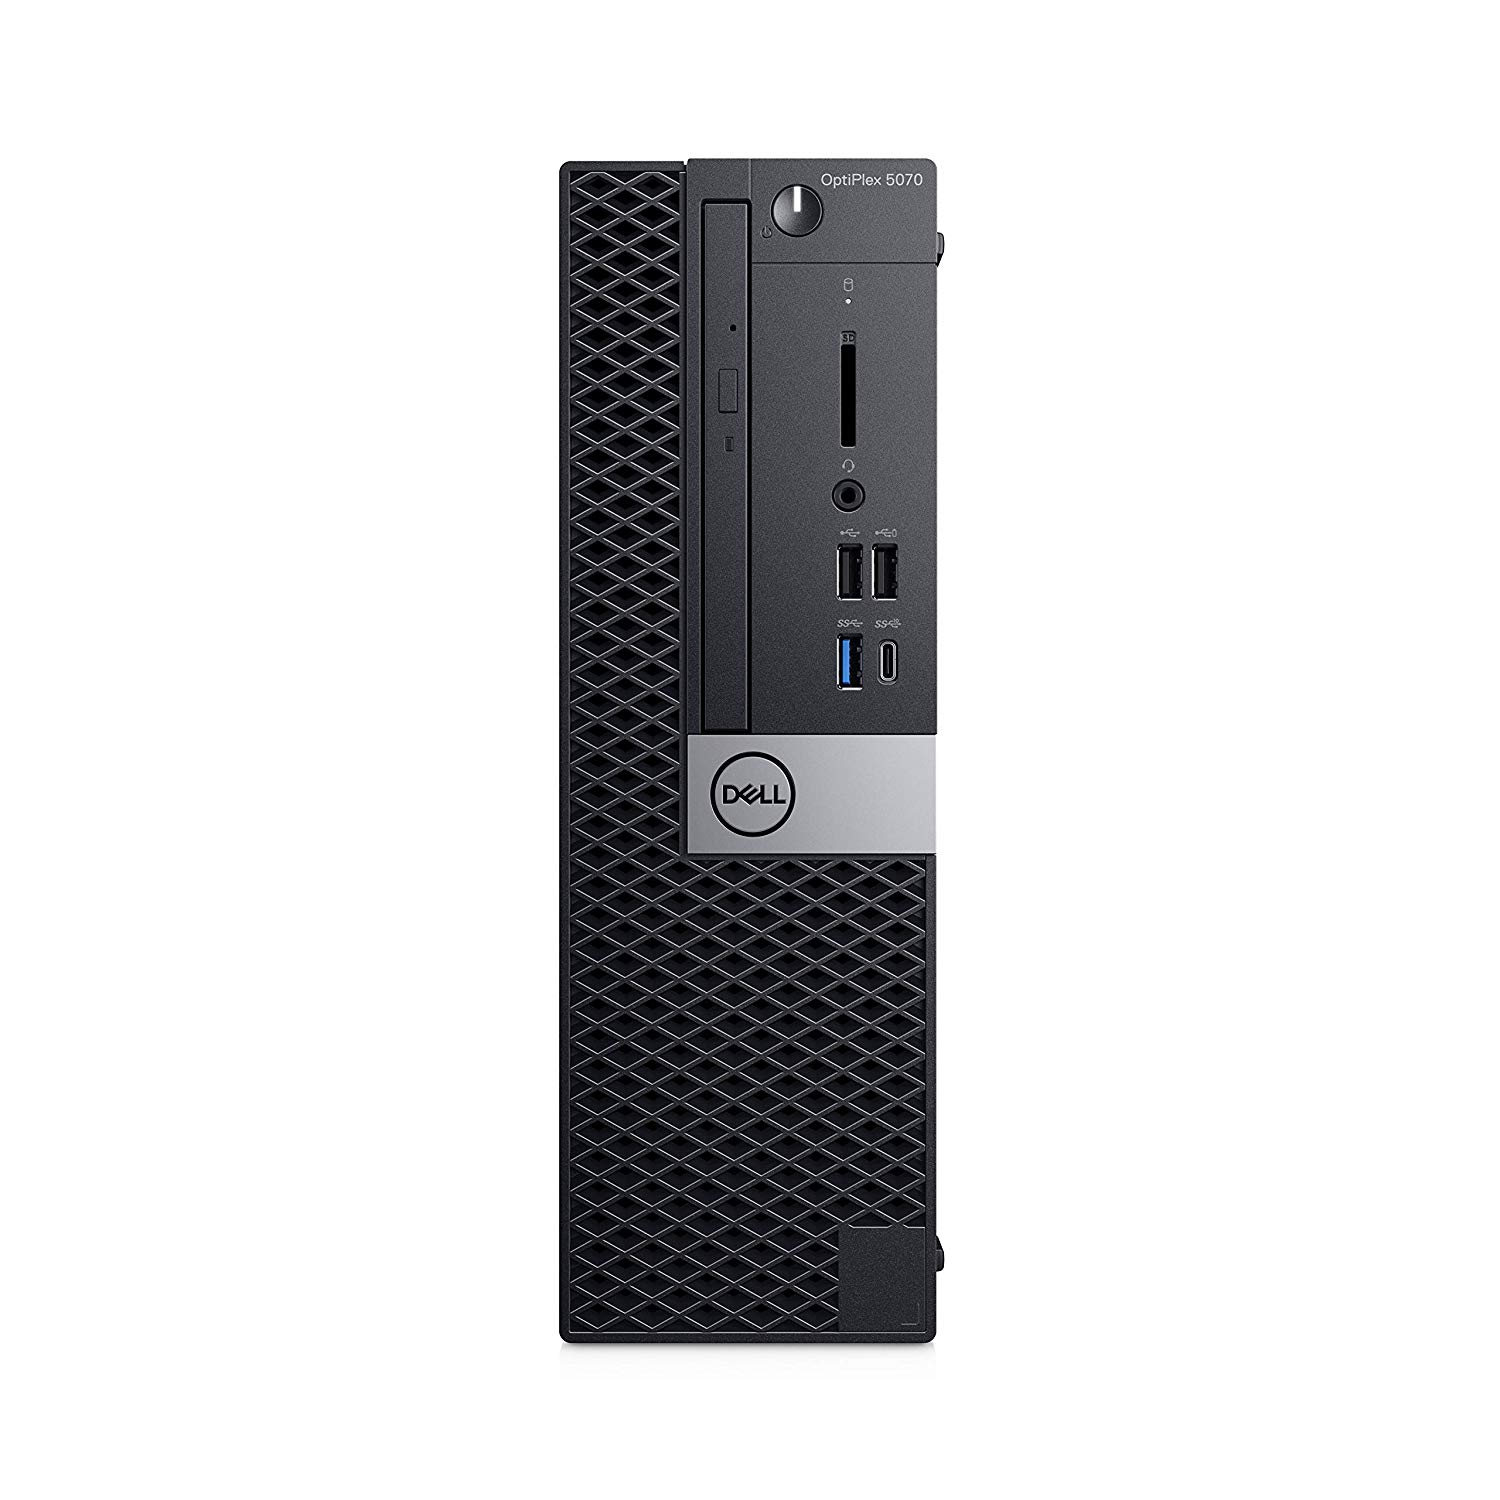 Dell Opti 5070 i5 8GB 256GB SSD SFF PC